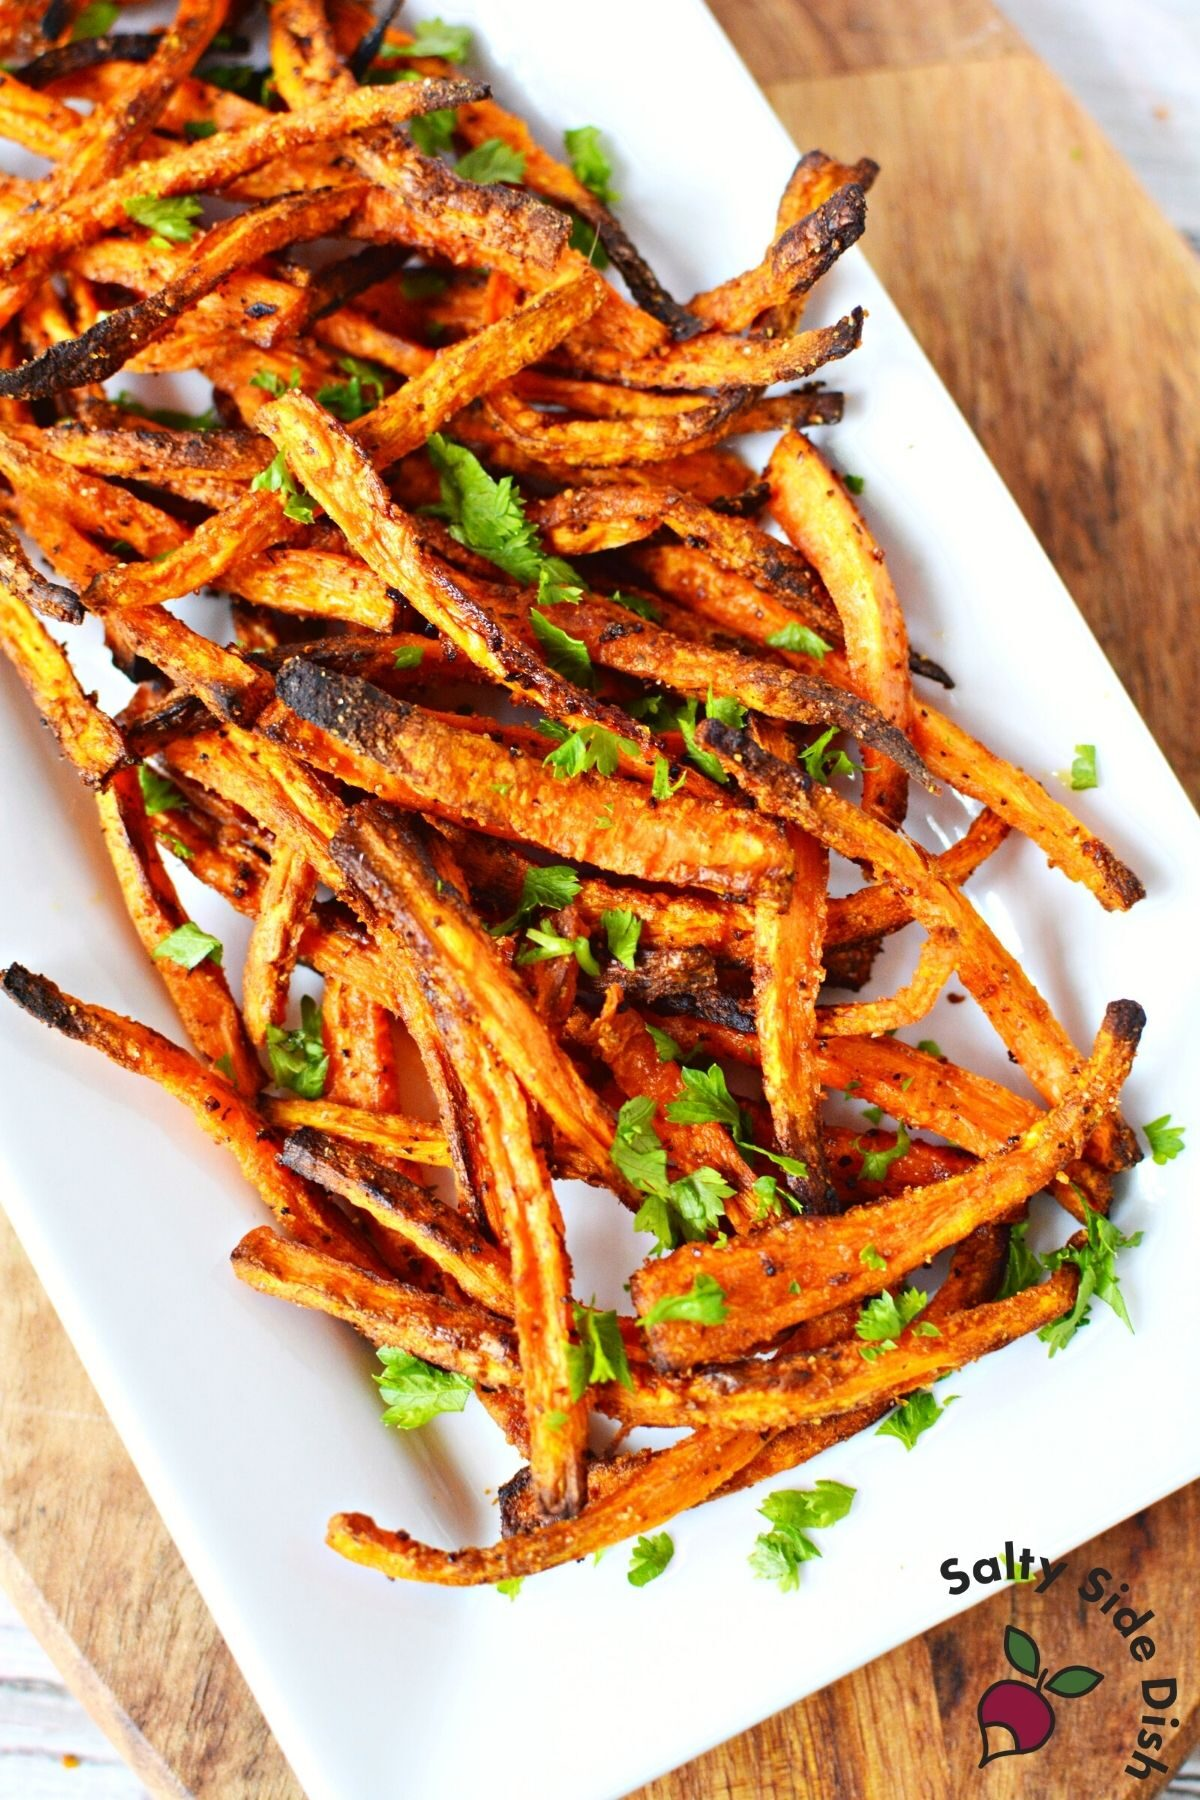 carrot fries on a white plate.